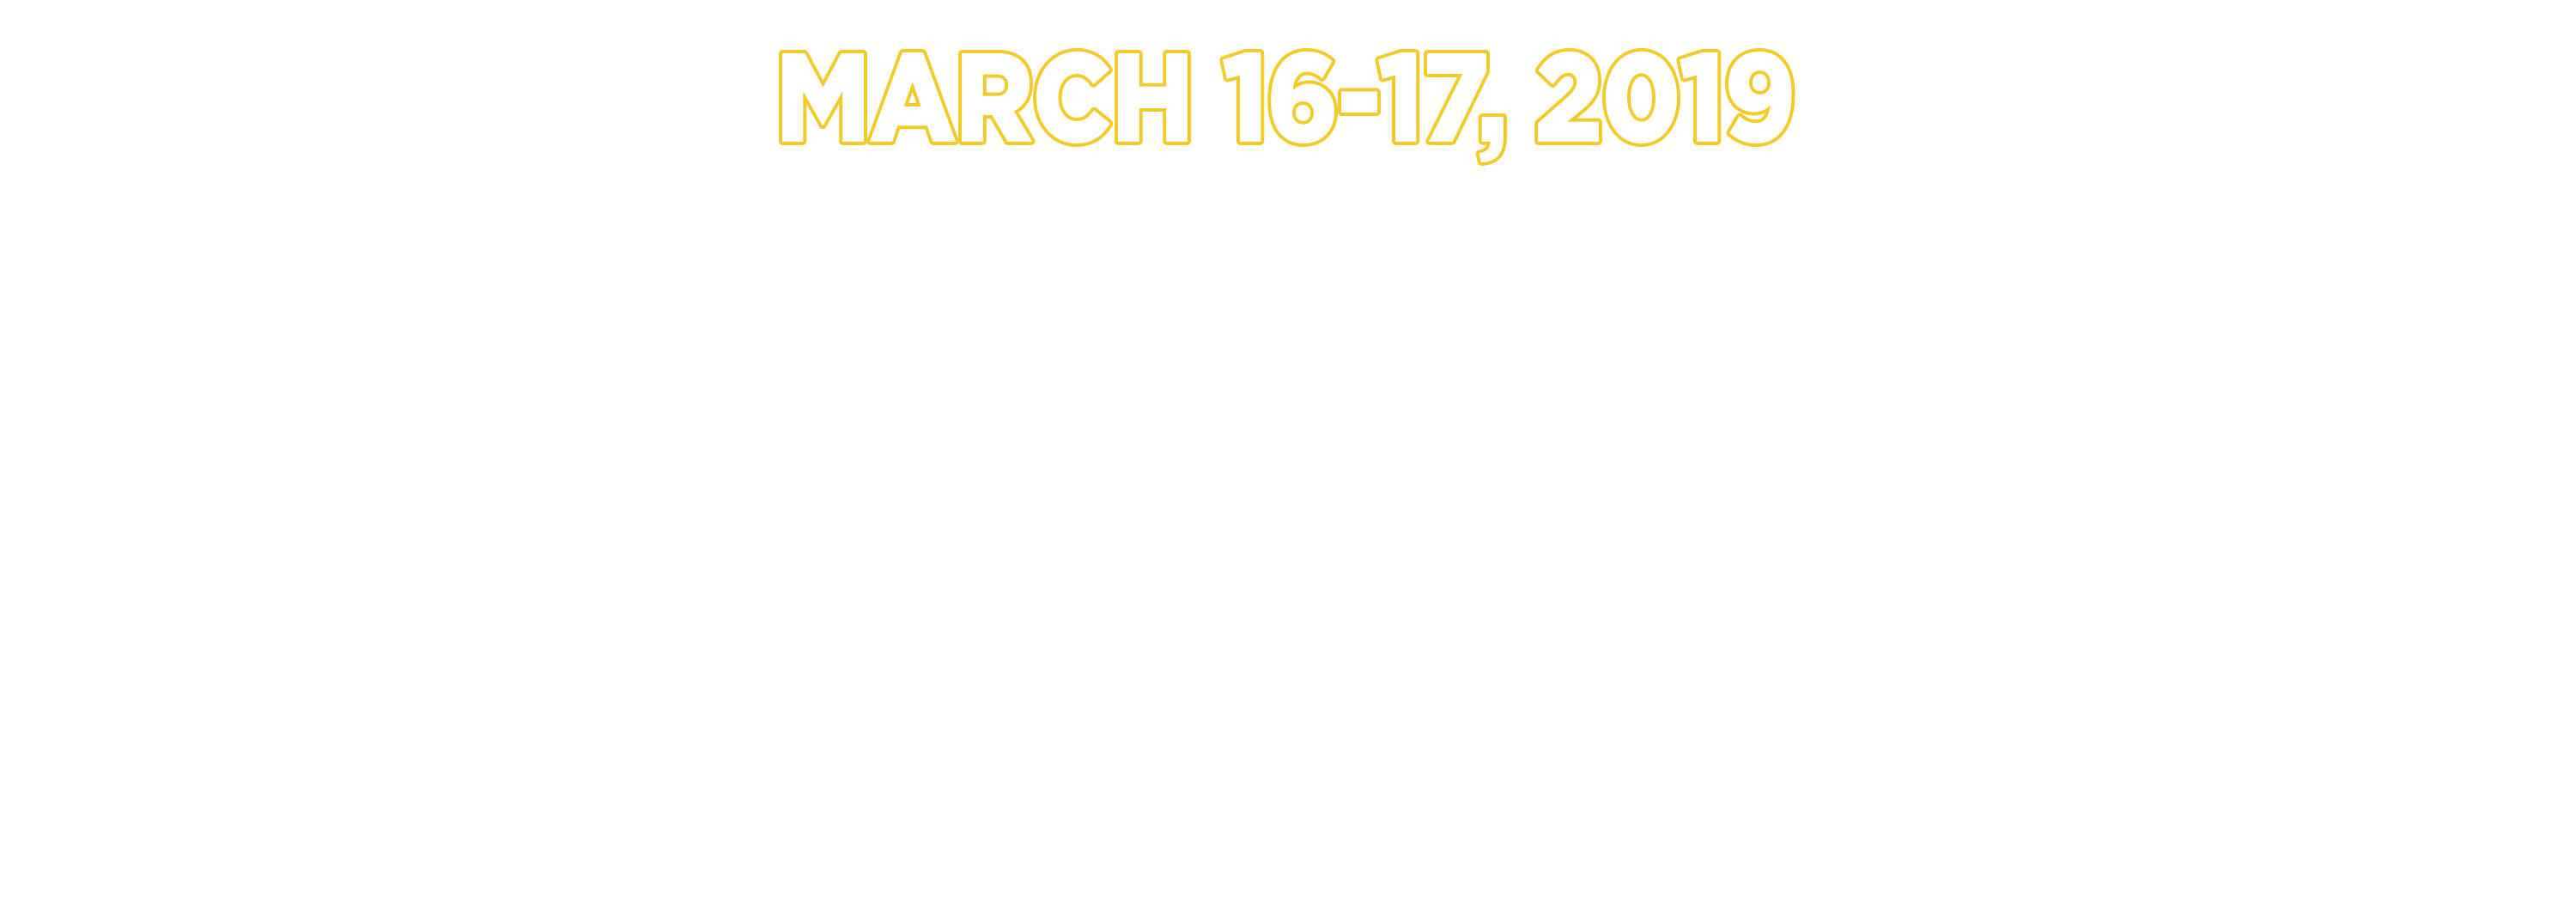 marquis-03-16-19-slider3.png